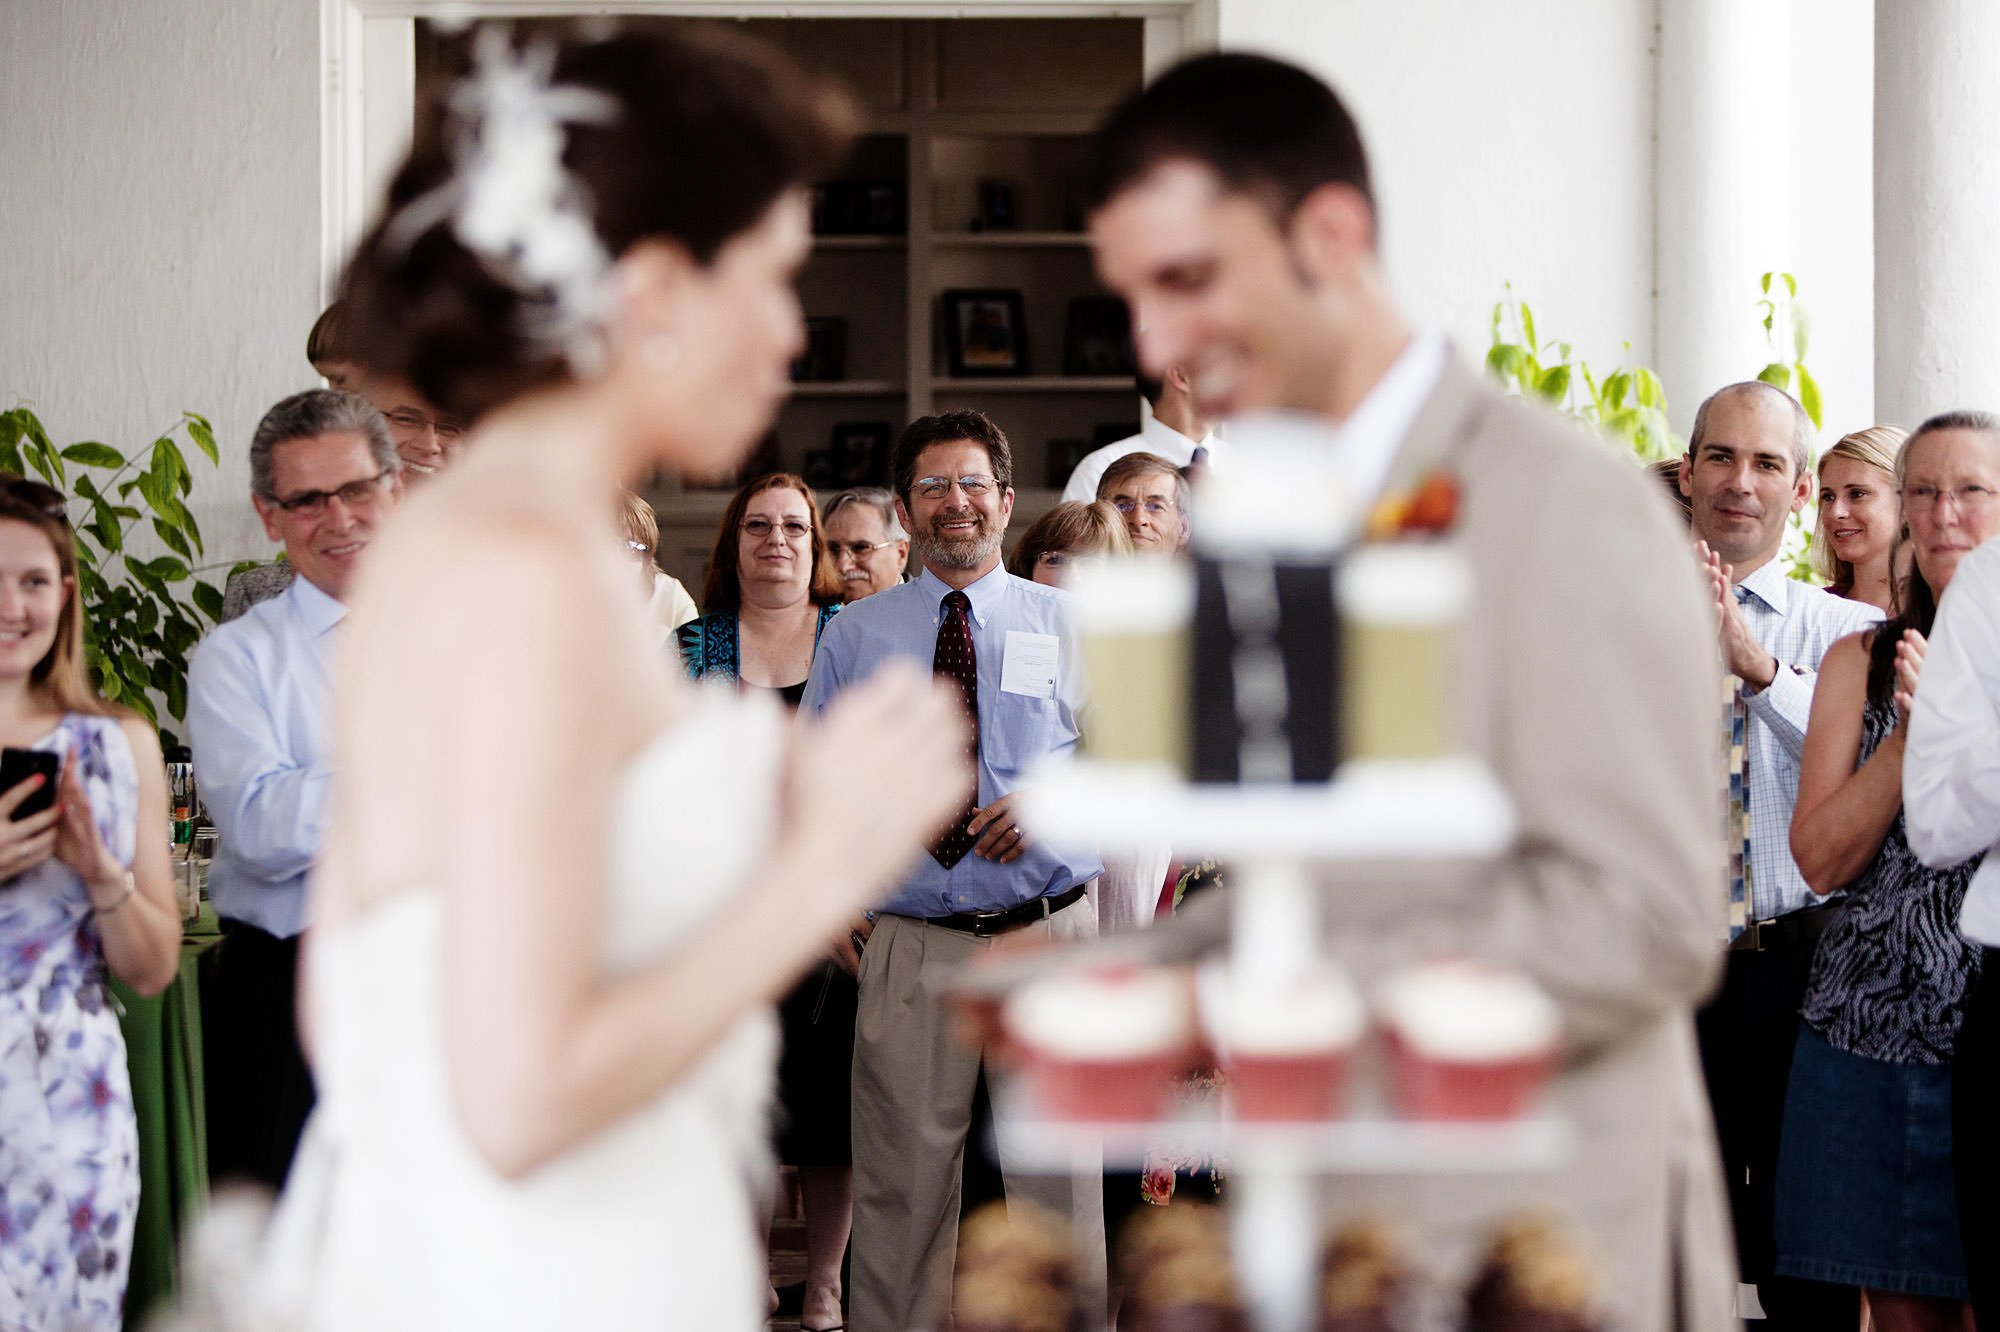 Guests watch the couple cut the cake during the River Farm Alexandria Wedding reception.